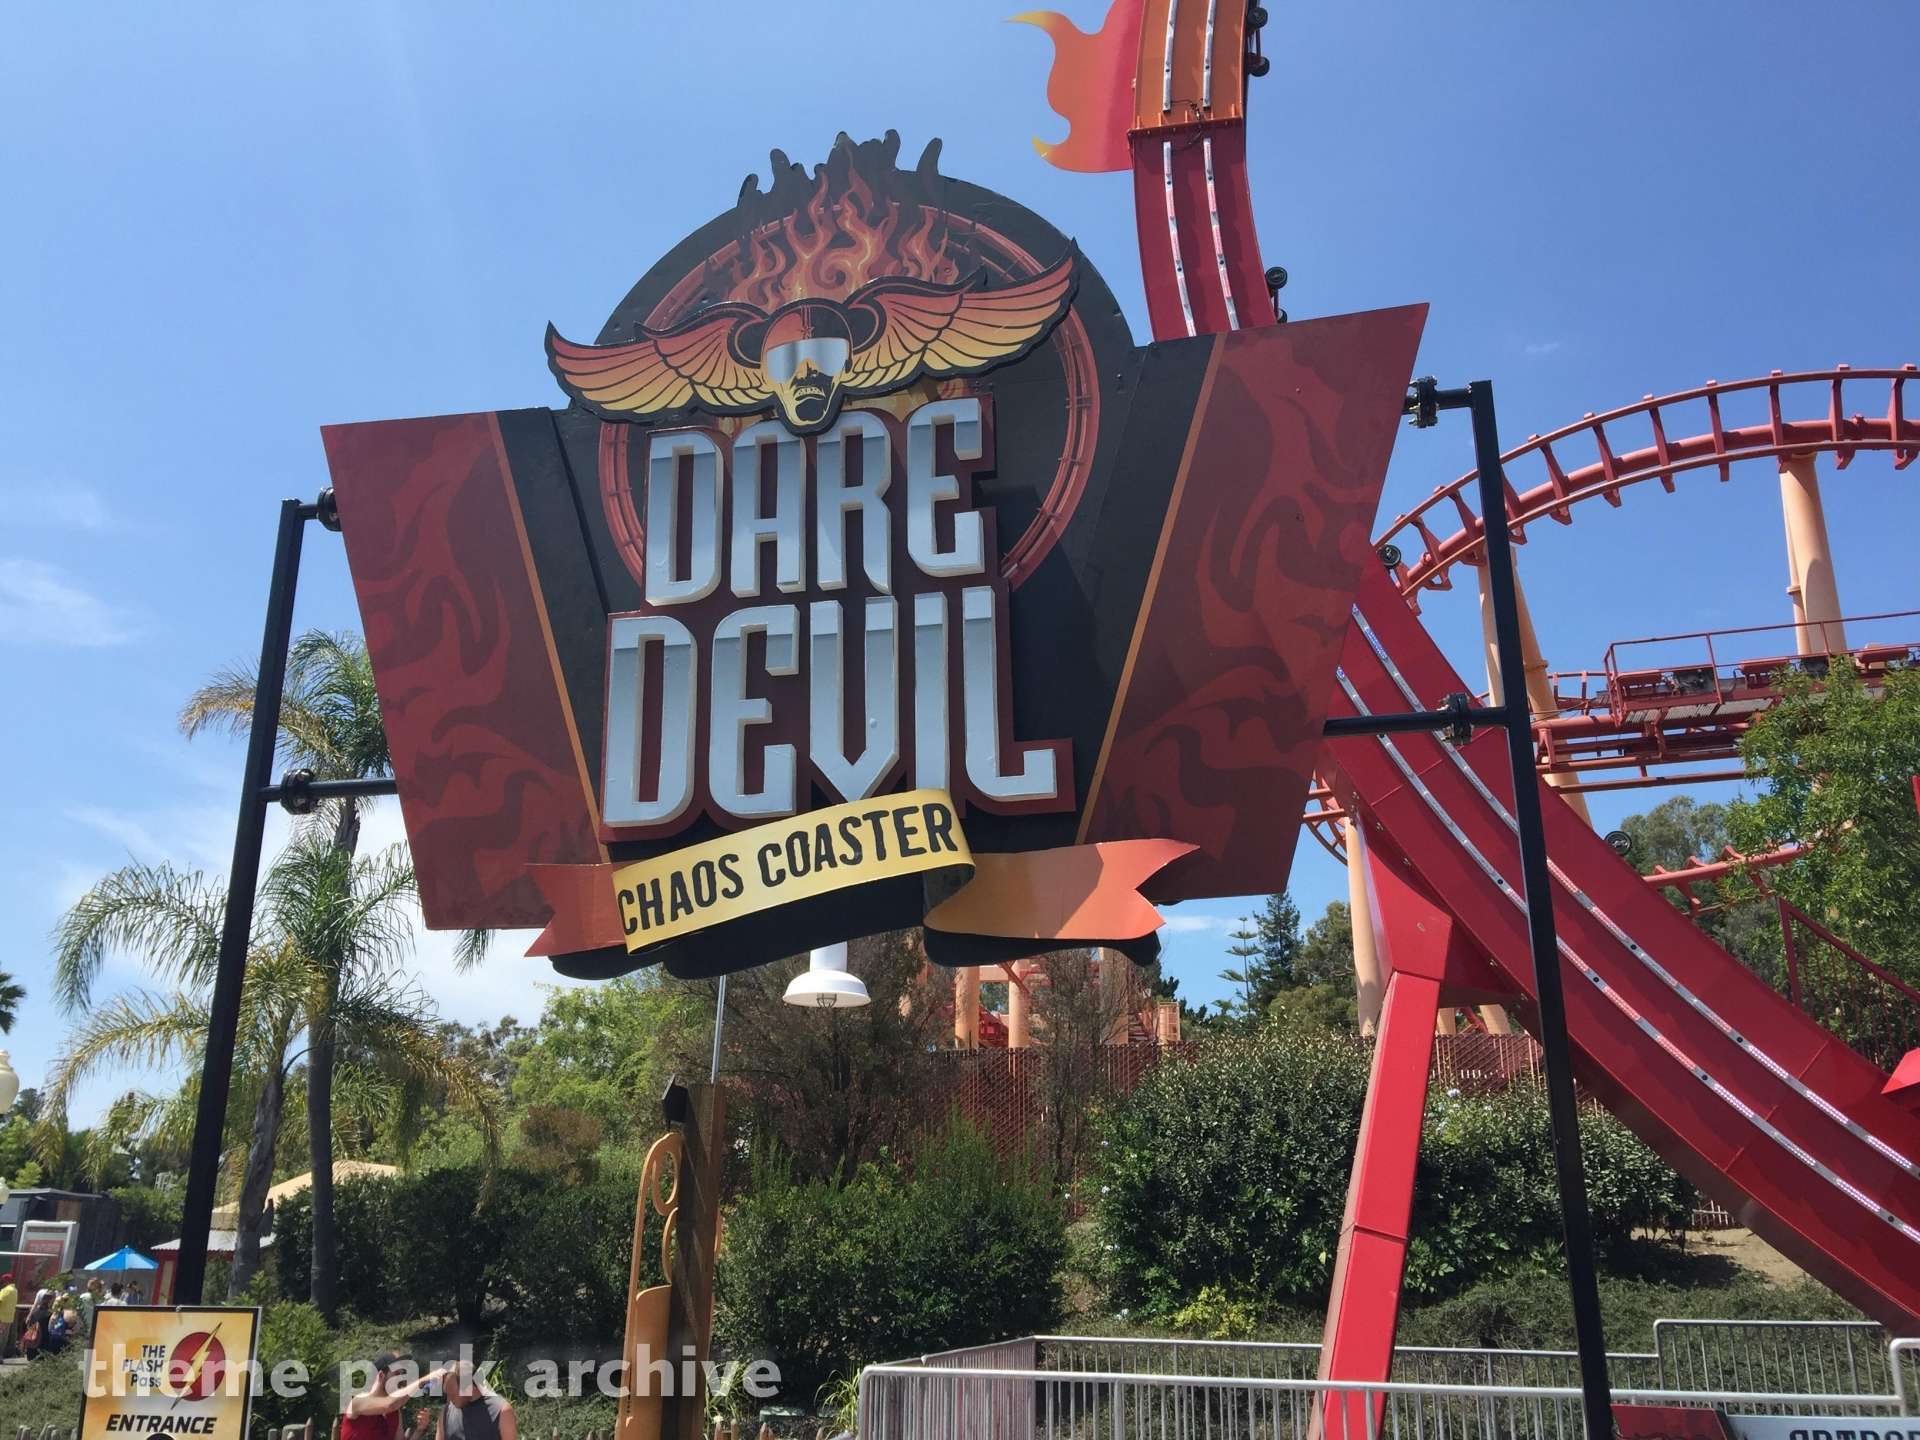 Dare Devil Chaos Coaster at Six Flags Discovery Kingdom